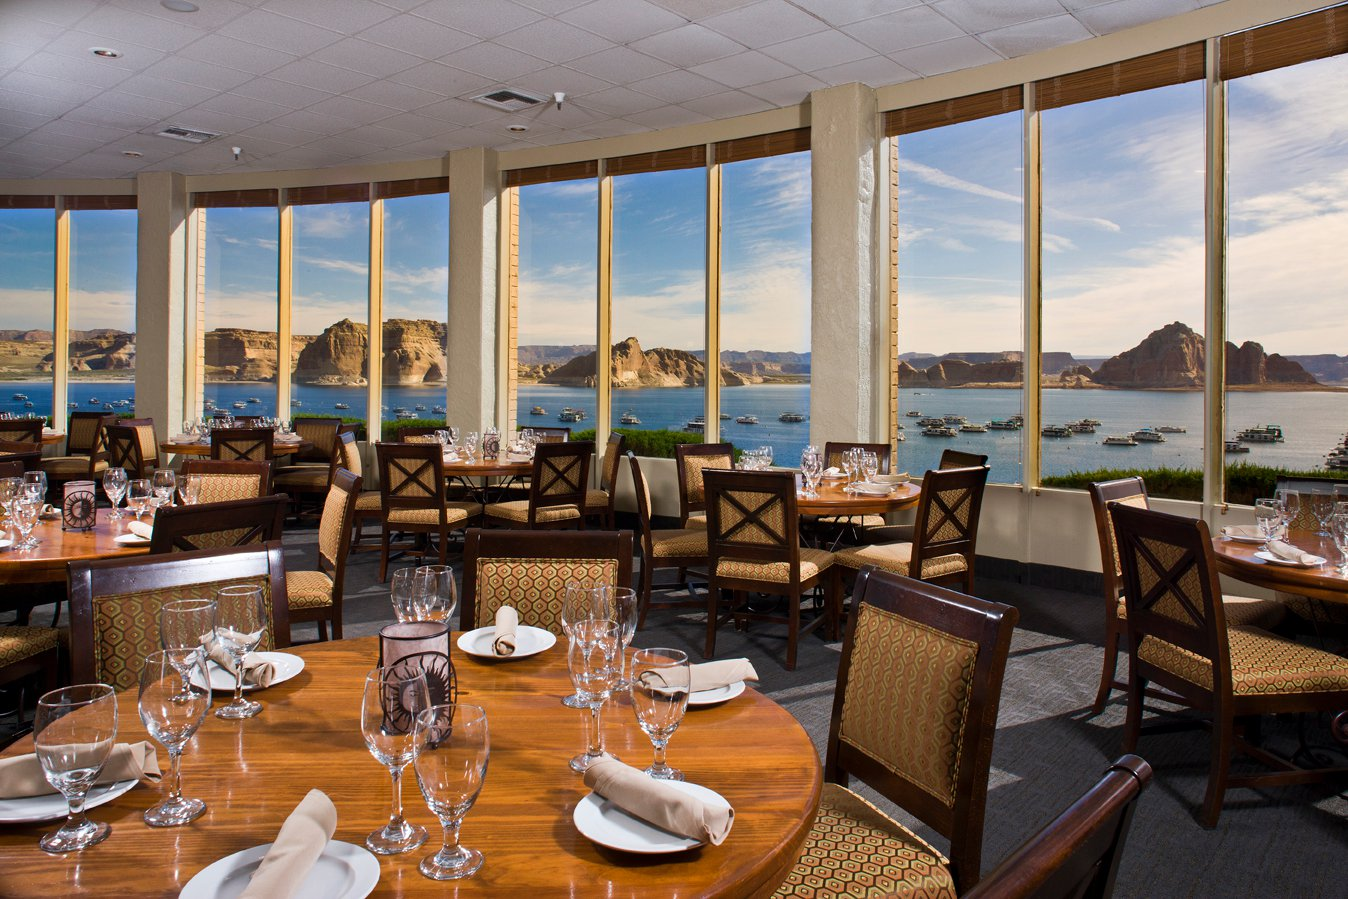 These 10 Restaurants In Arizona Have Jaw Dropping Views